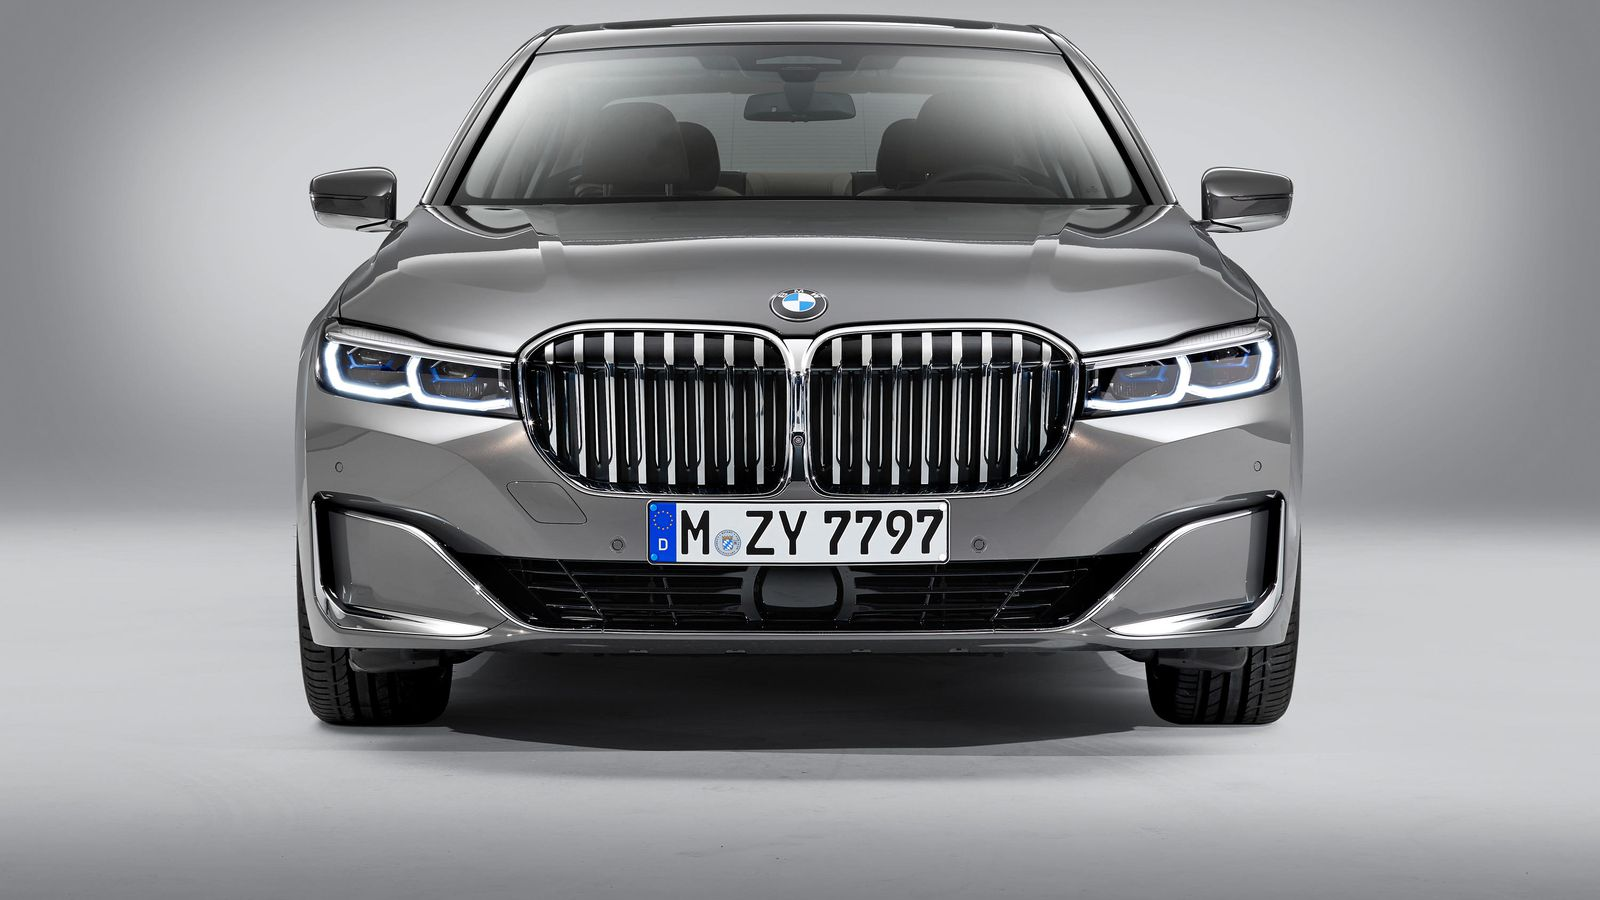 69 Best 2020 BMW 7 Series History